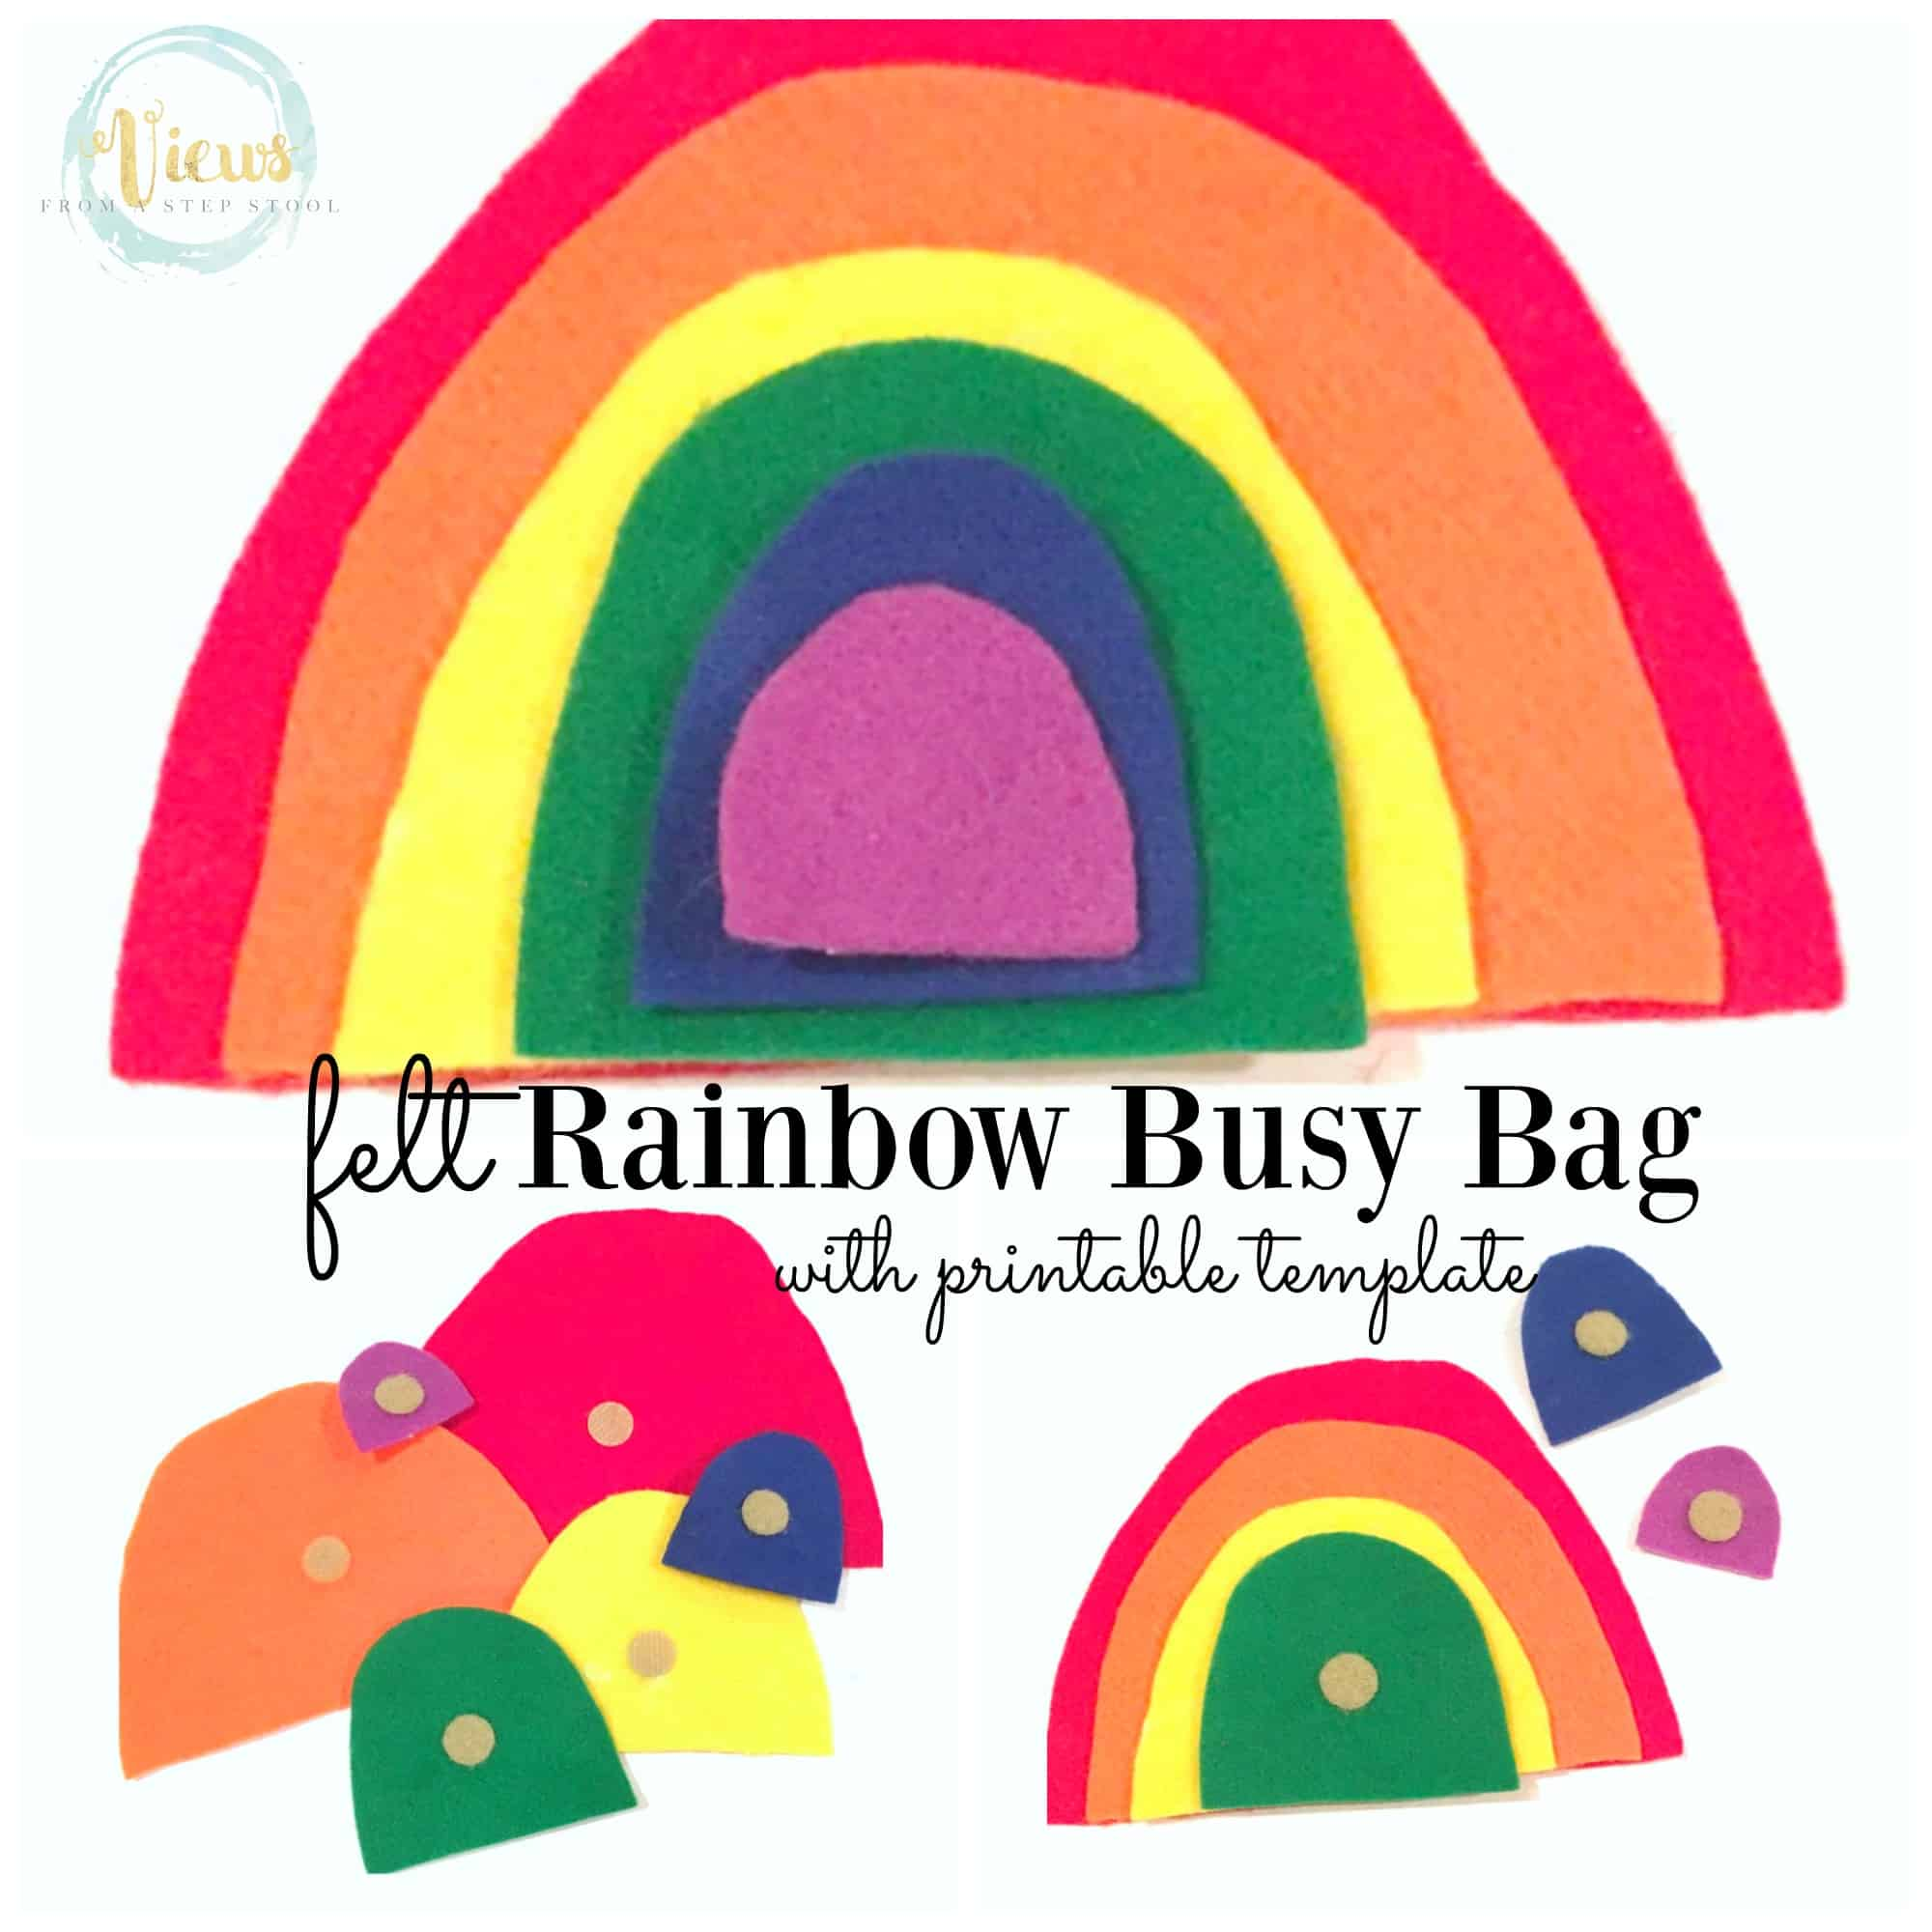 rainbow busy bag square collage